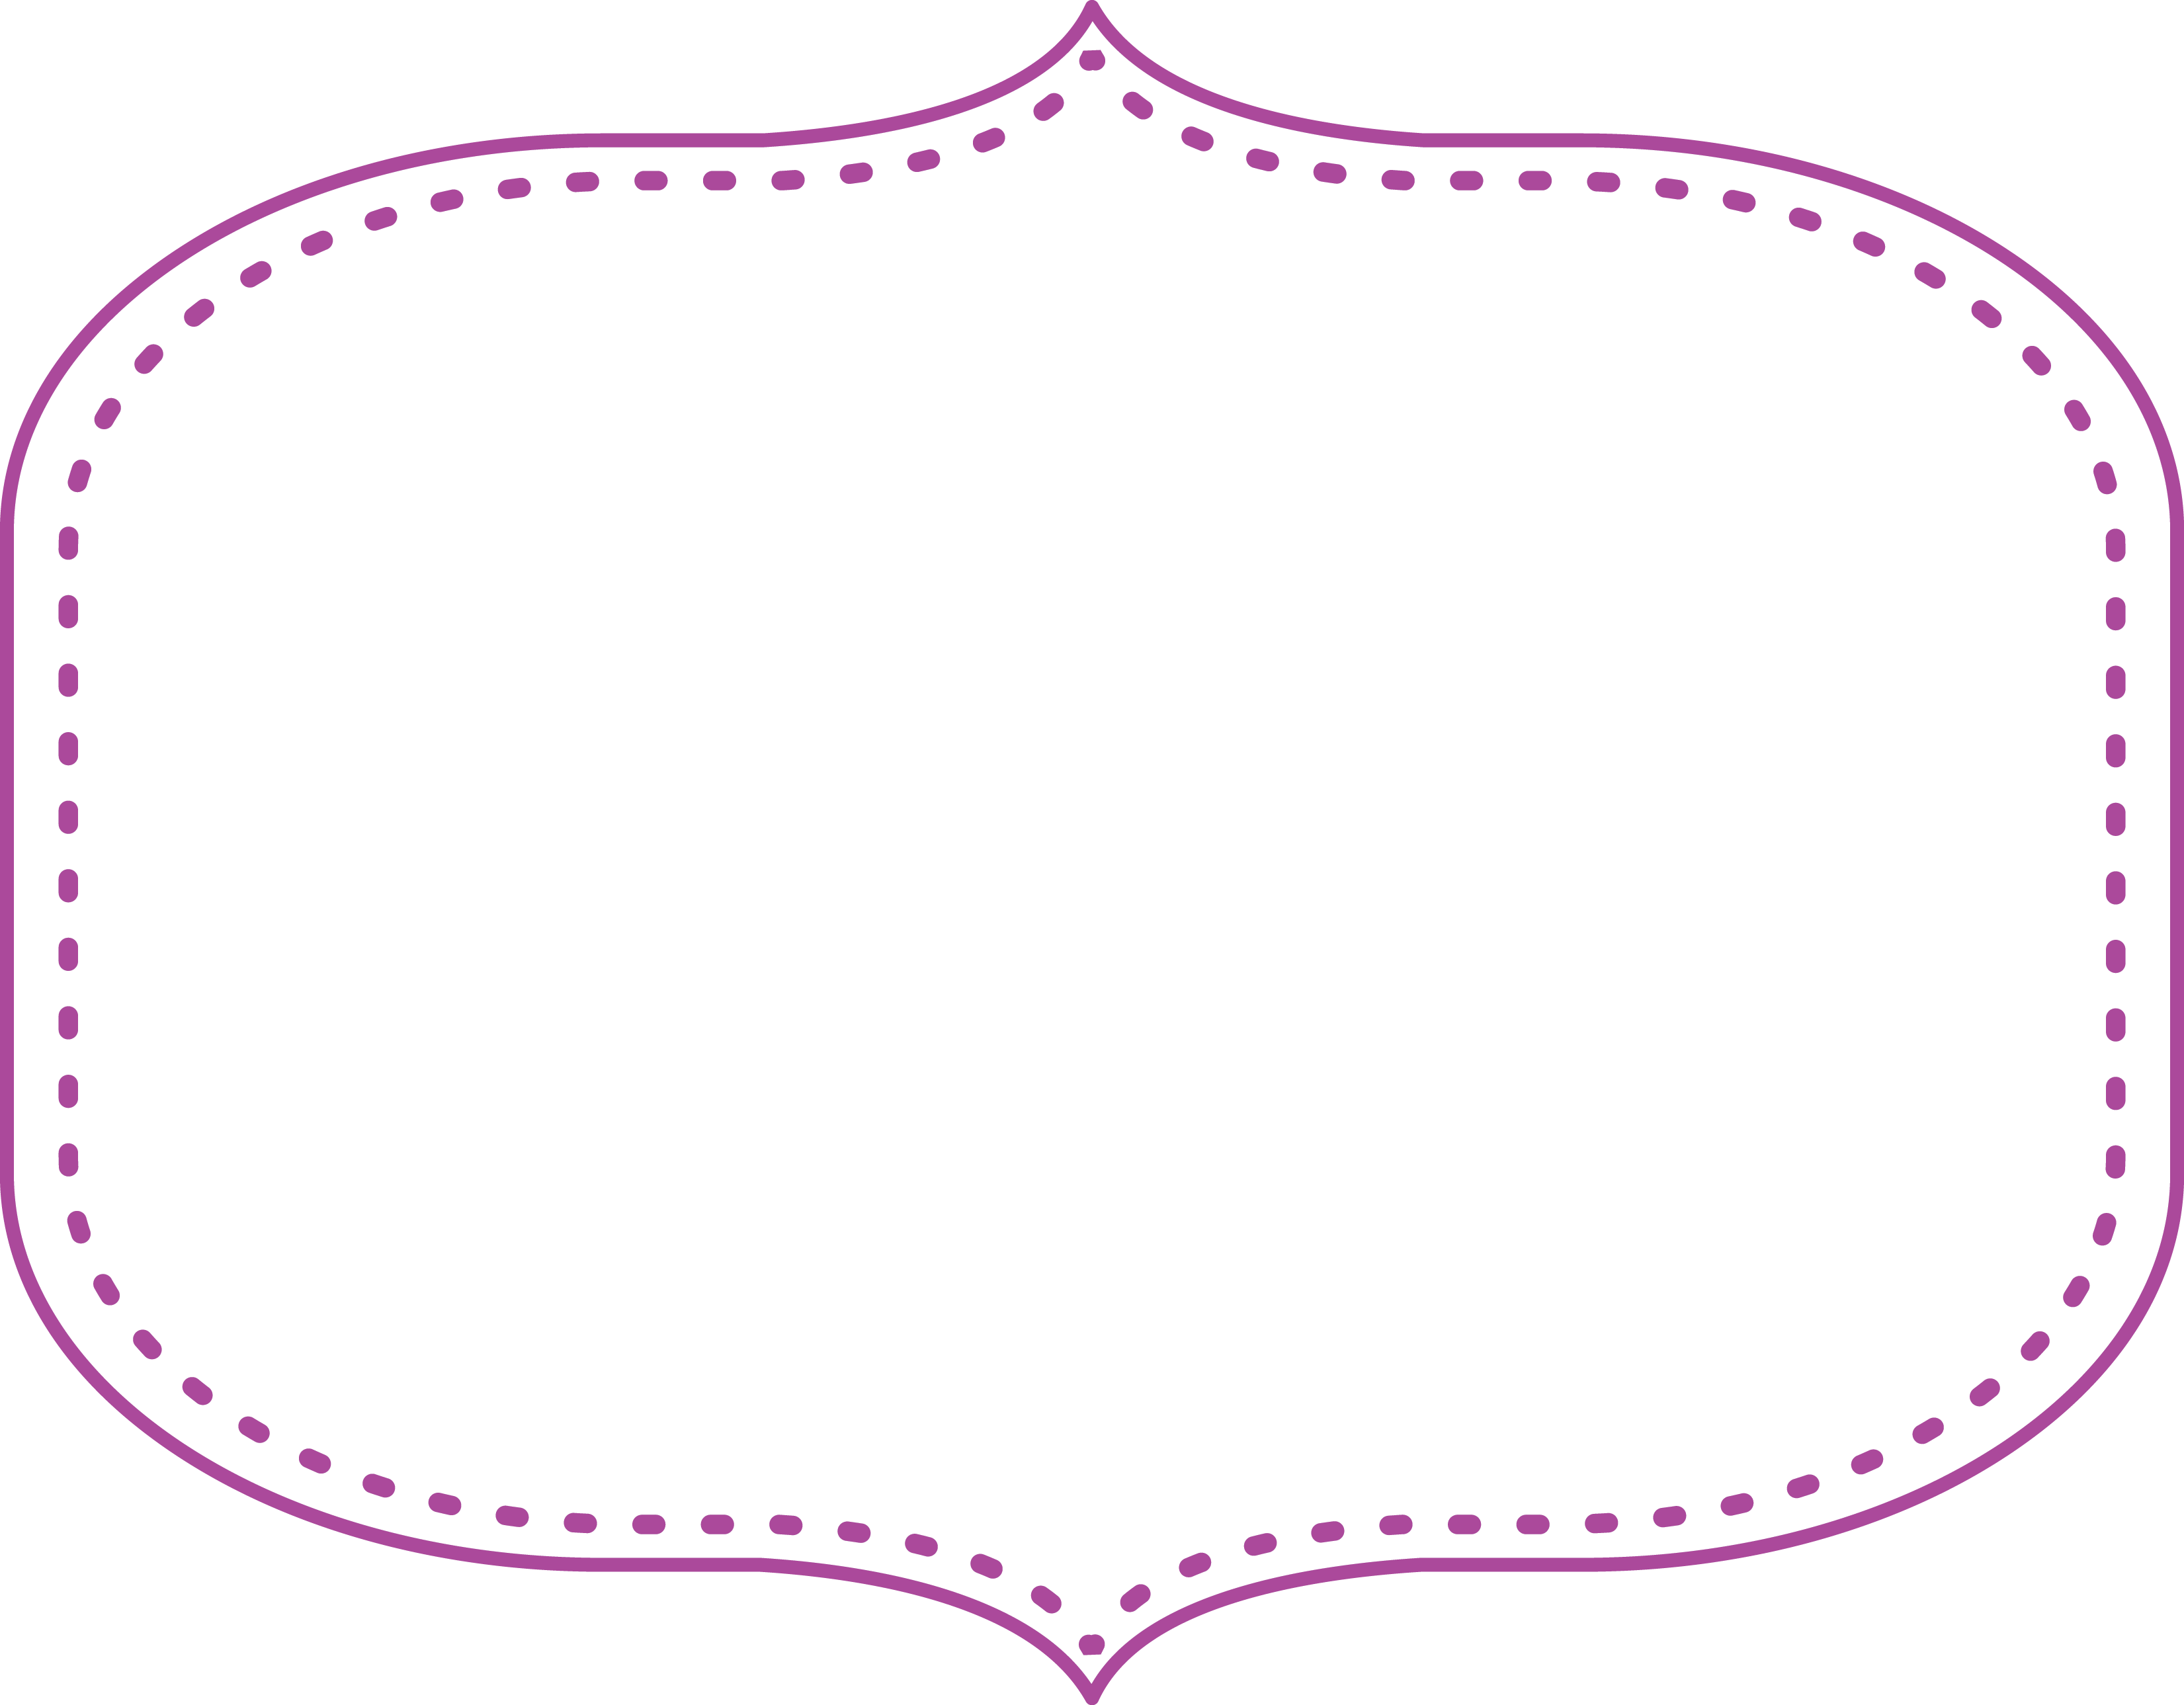 Label frame png. Images of spacehero the